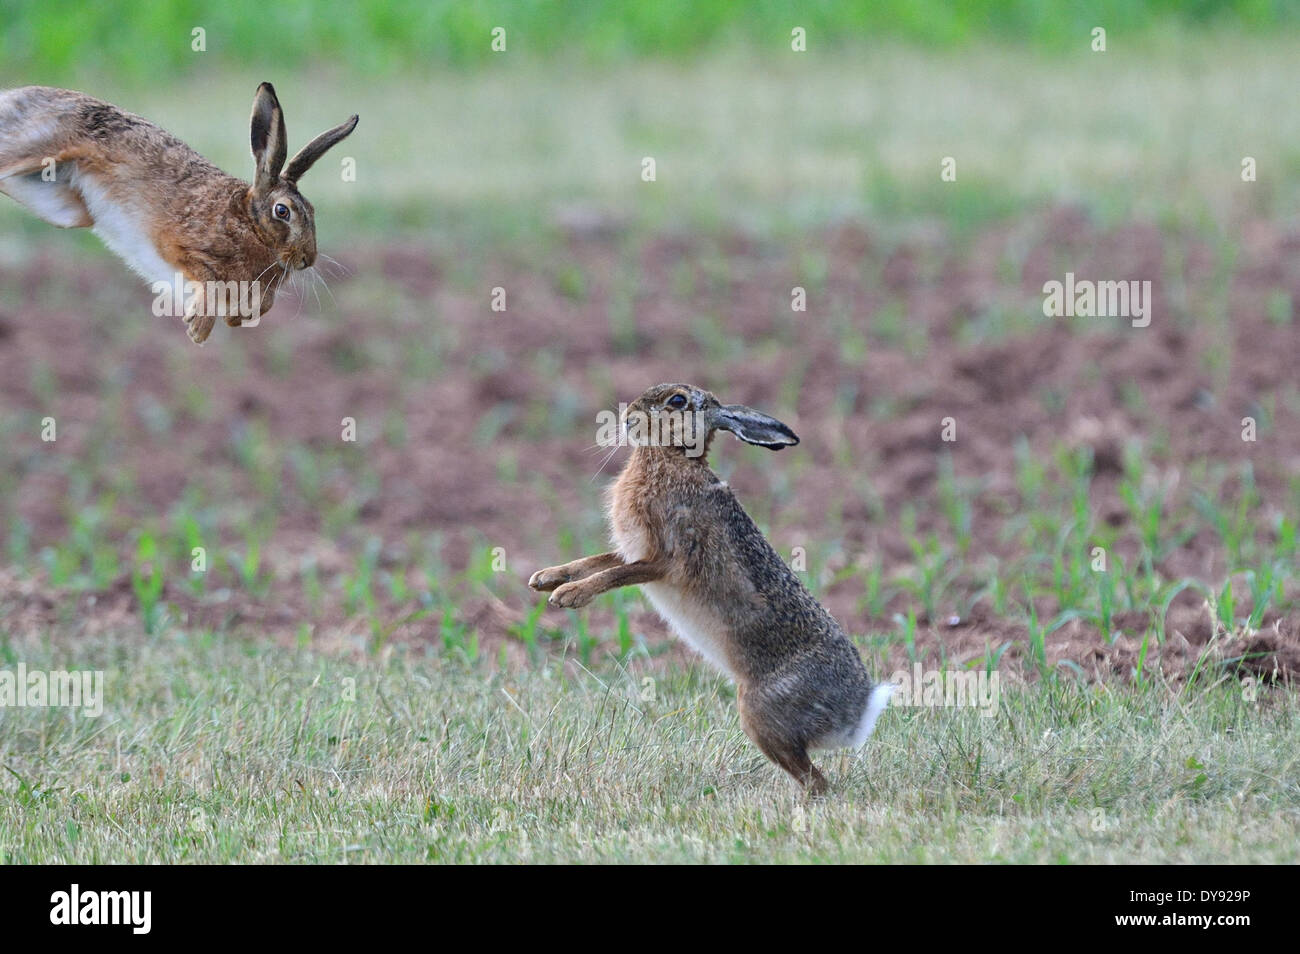 Hare Rabbit Lepus europaeus Pallas brown hare bunny hares rabbits May rodent nature wild animal game animal animals Germany, - Stock Image